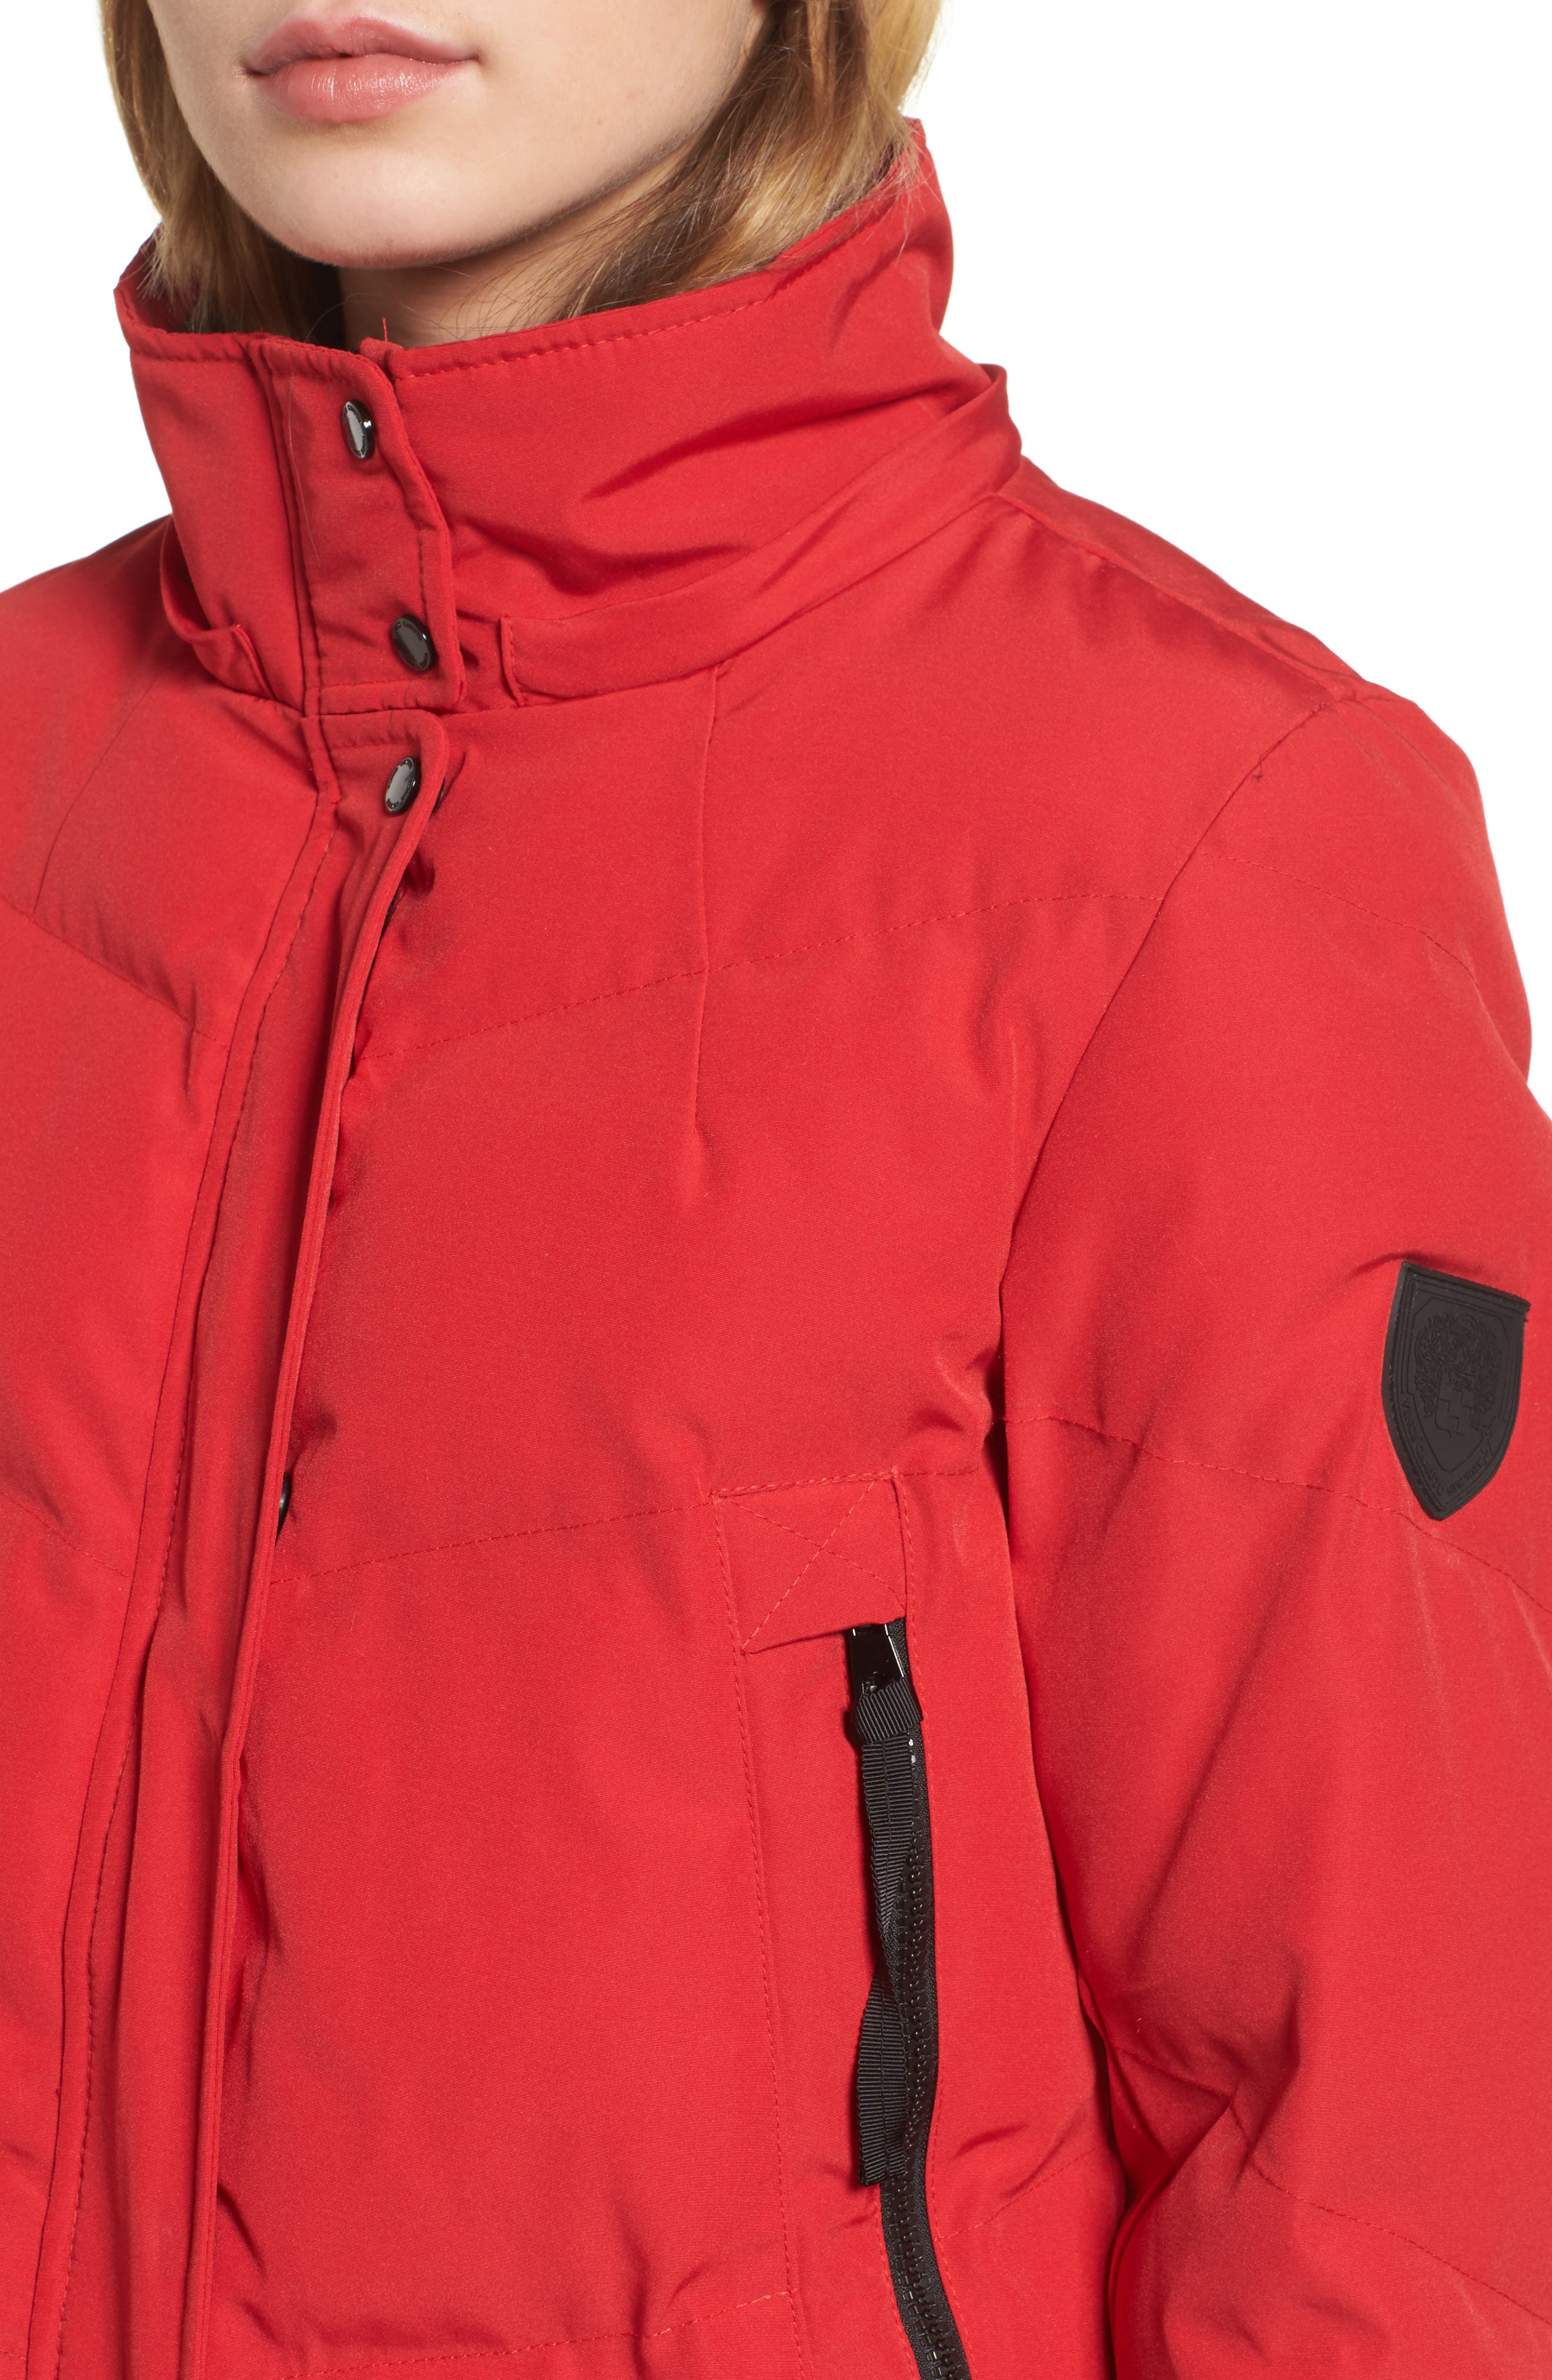 Quilted Puffer Jacket,                             Alternate thumbnail 4, color,                             Red